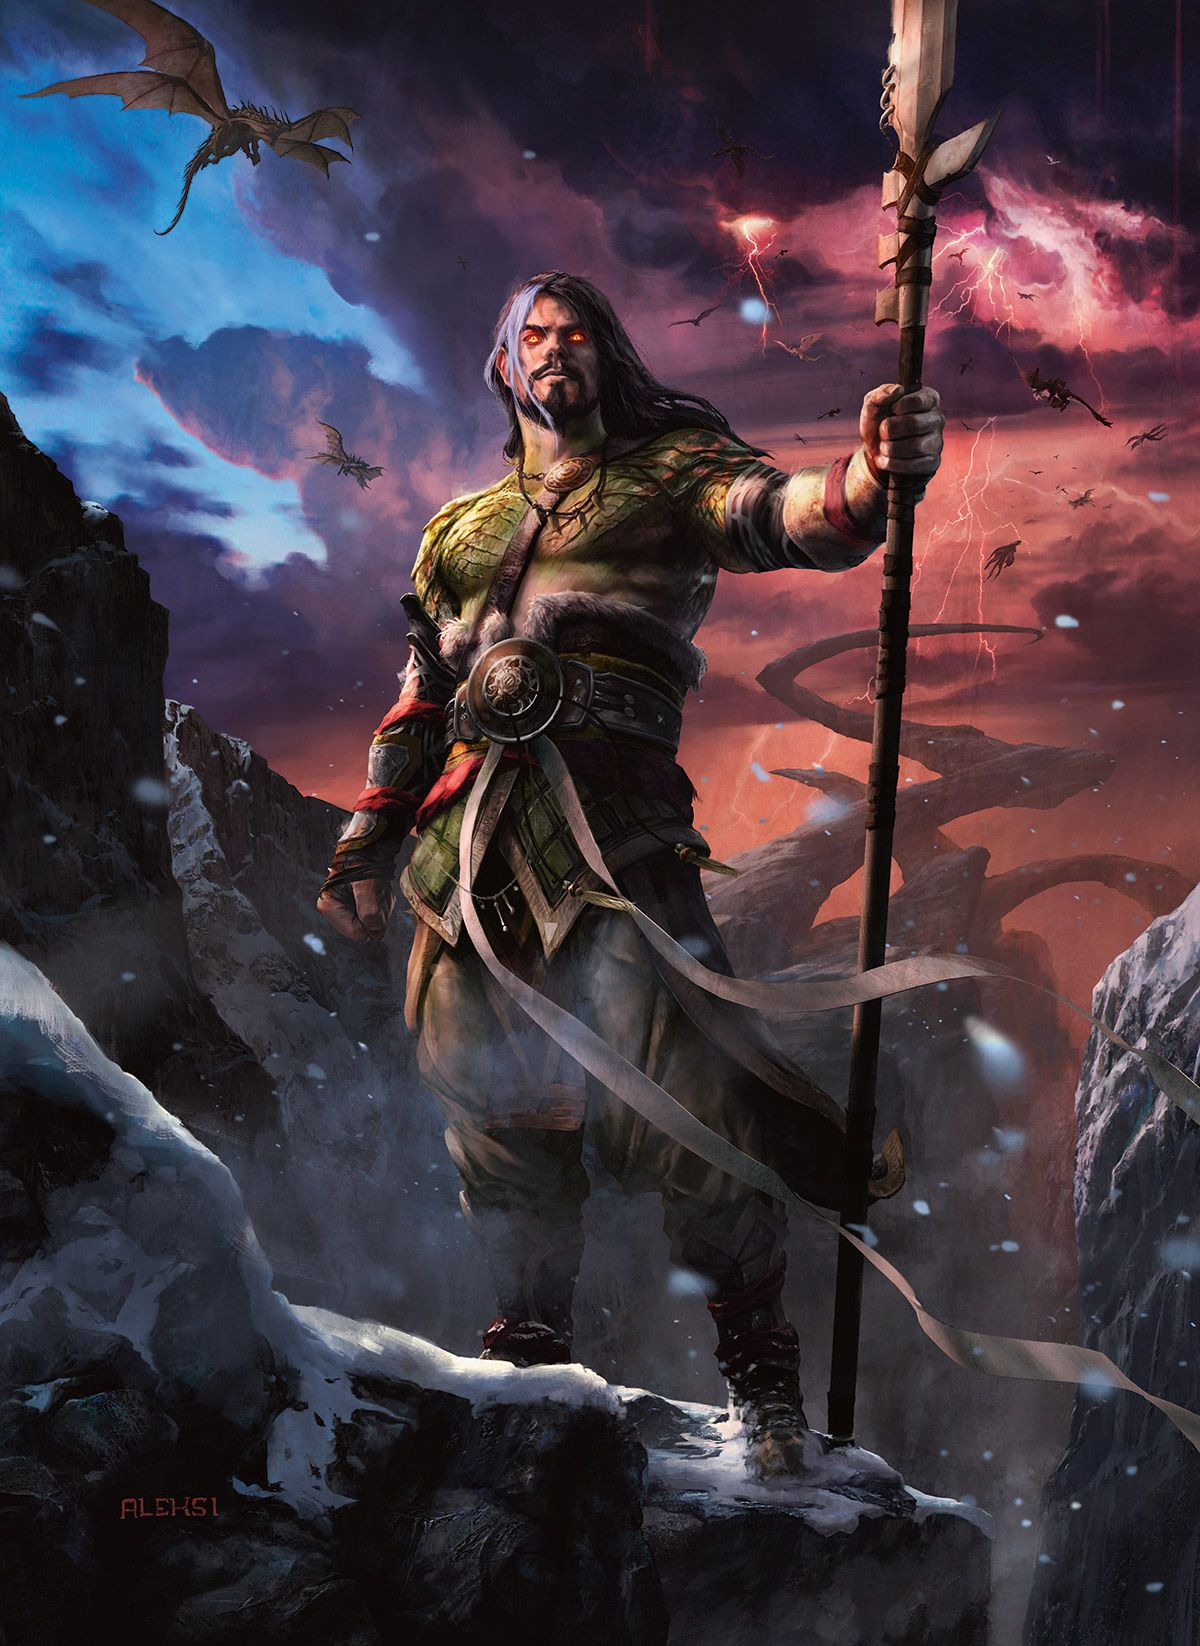 Wizardsmagic Sarkhan At Last Is Whole Now He Seeks Ugin In Search Of Both Answers And Narset Read Unbroken And Unbowed Now On D Mtg Art Magic Art Fantasy